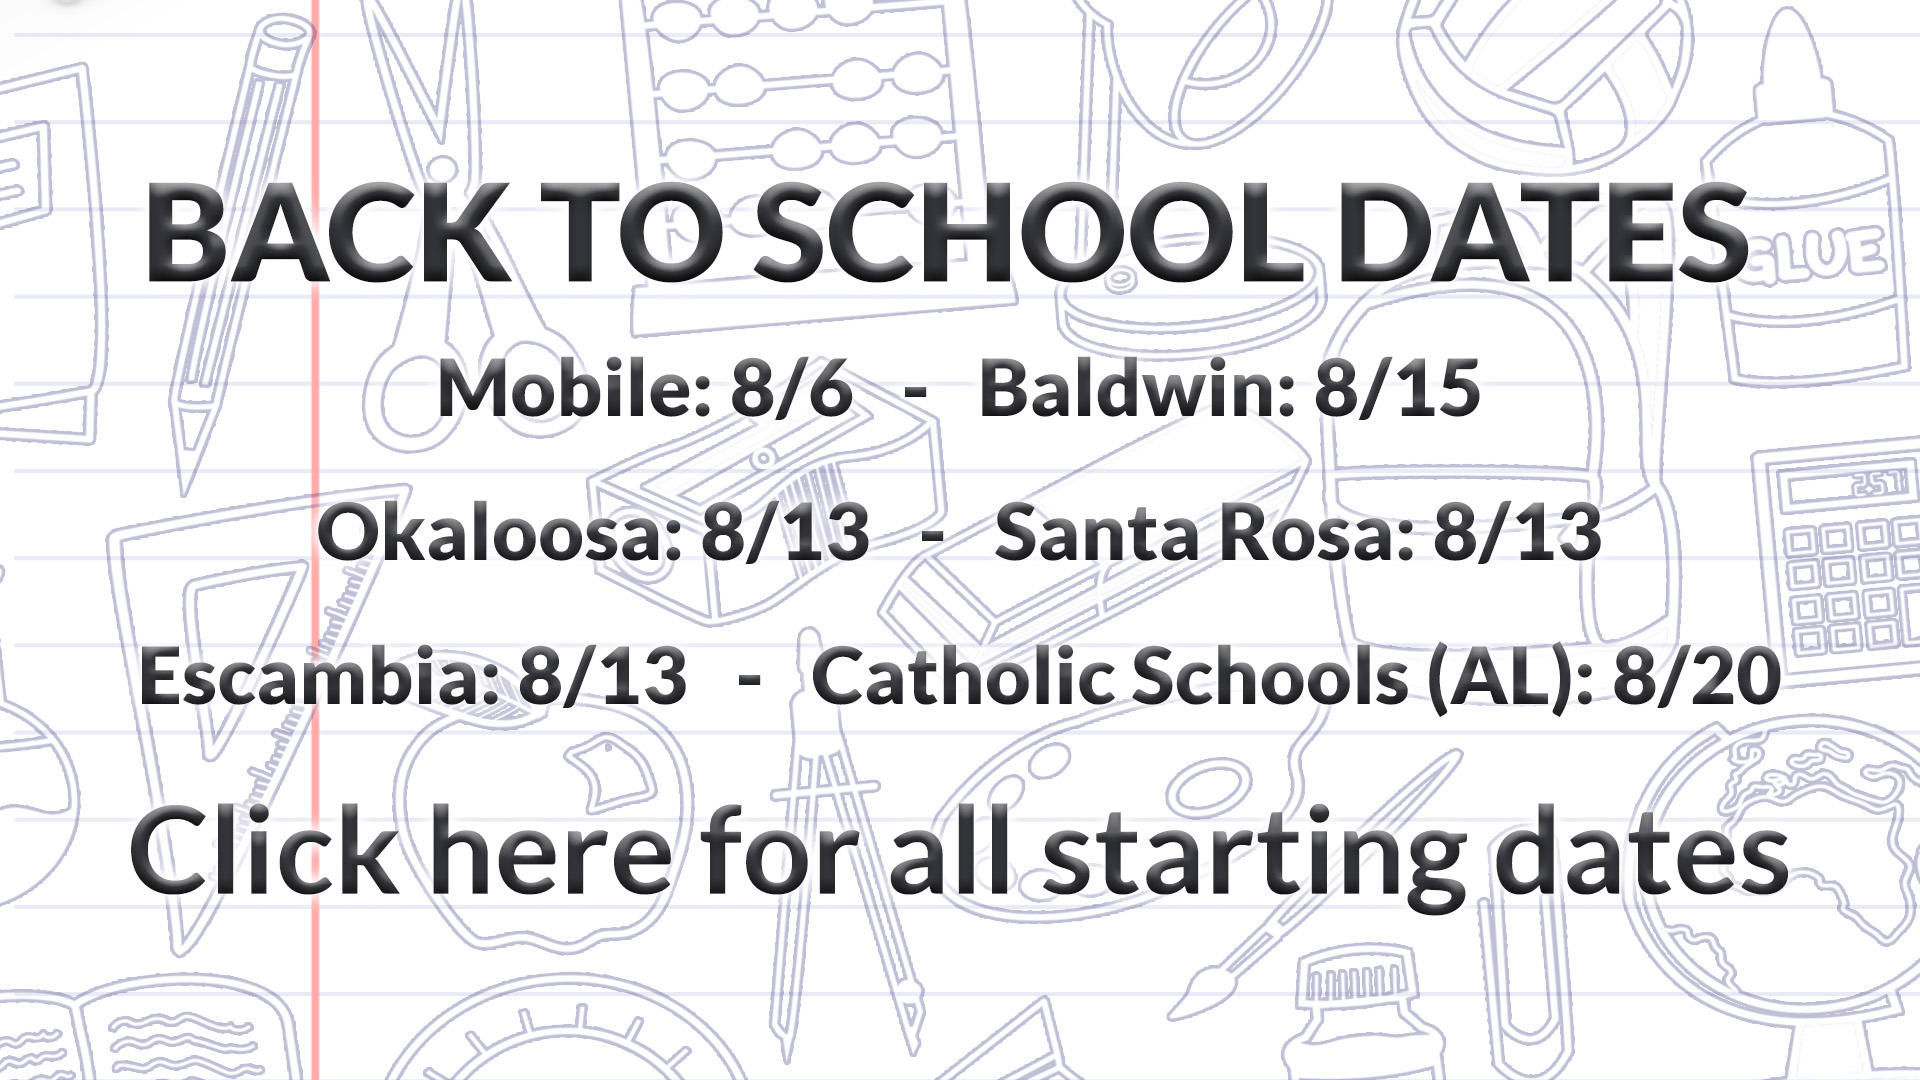 1920x1080_Back To School Starting Dates_1533158660423.jpg.jpg